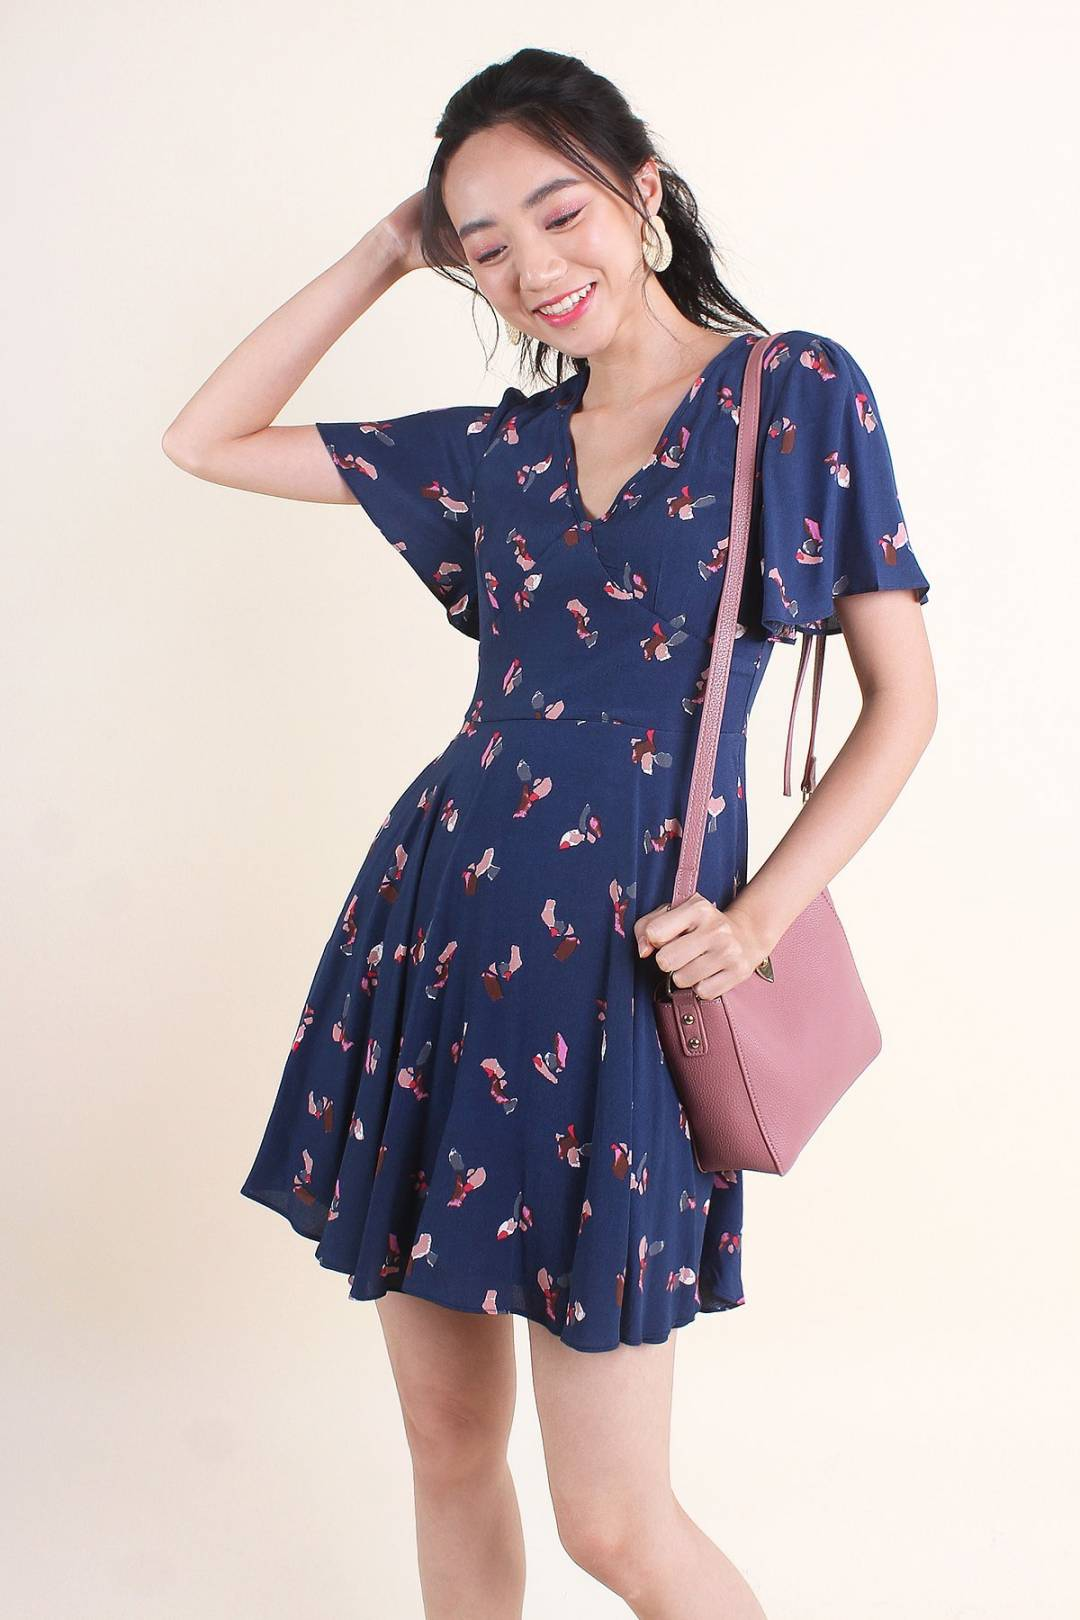 MADEBYNM MINKA V-NECK PRINTS SKATER DRESS IN PRUSSIAN BLUE [XS/S/M/L/XL]